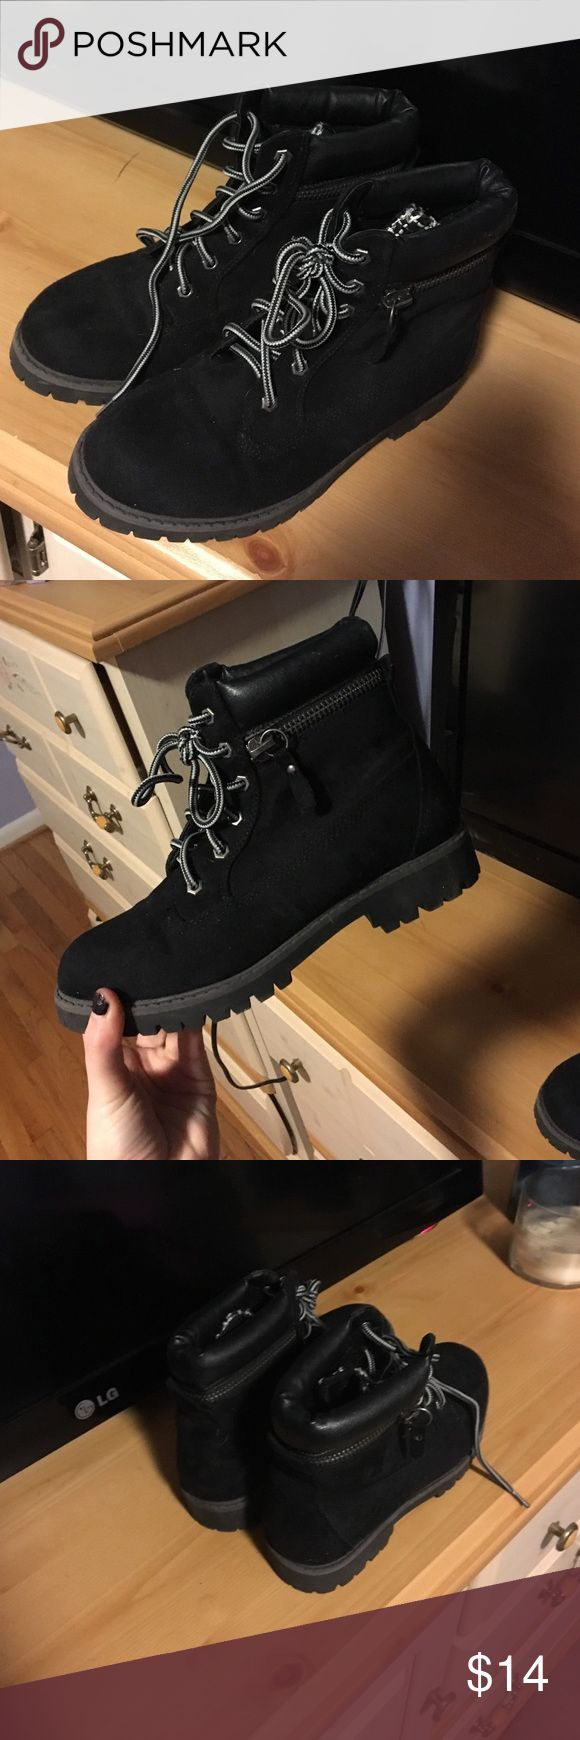 Black Knock Off Timberland Boots Black Timberland knock off lace up boots from Tilly's Tilly's Shoes Lace Up Boots